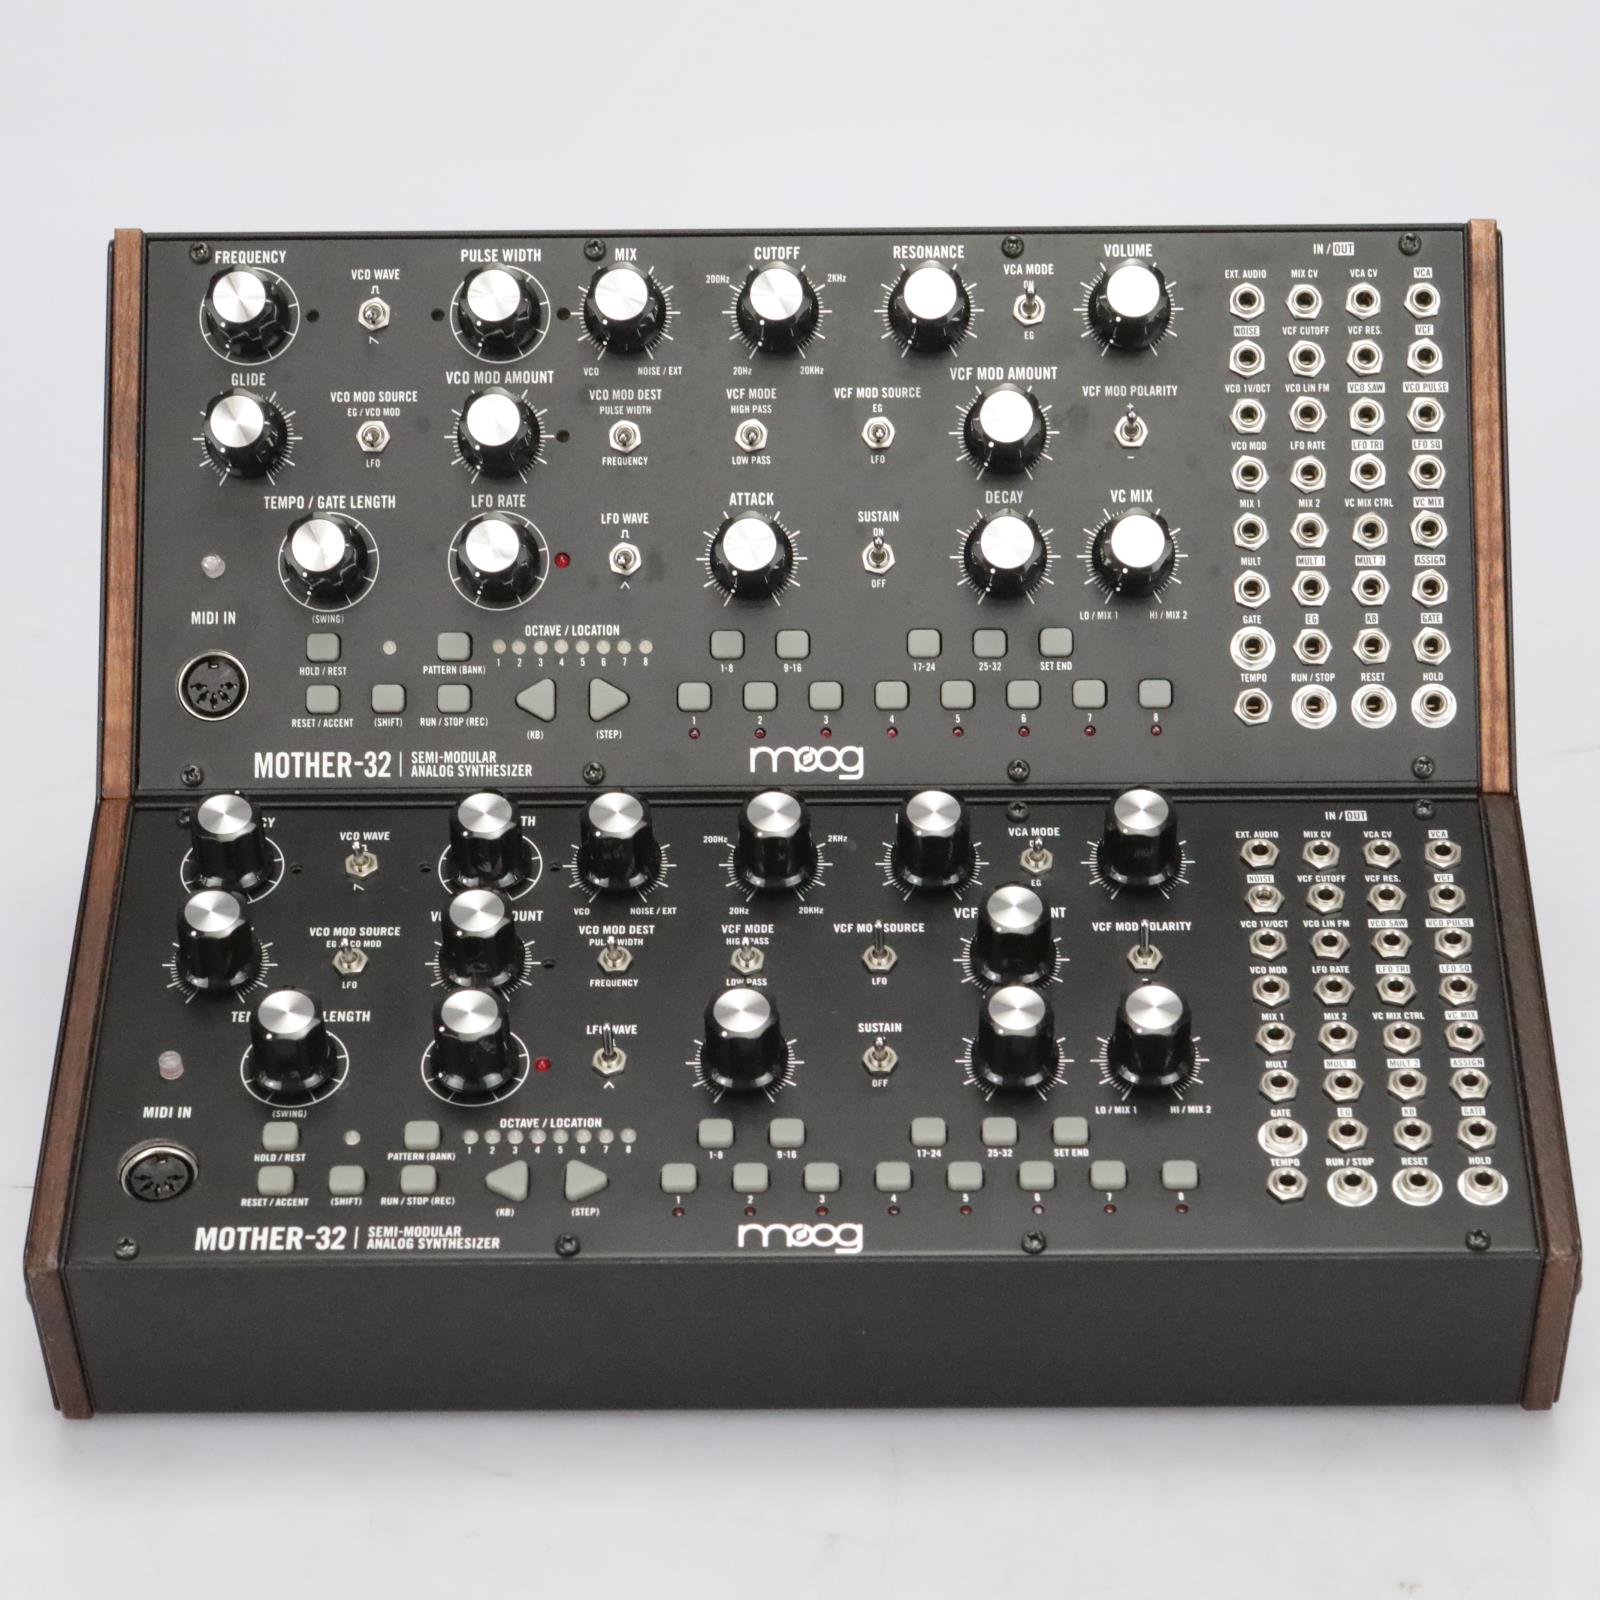 2 Moog Mother-32 Semi-Modular Analog Synthesizers w/ 2-Tier Rack Stand #40897